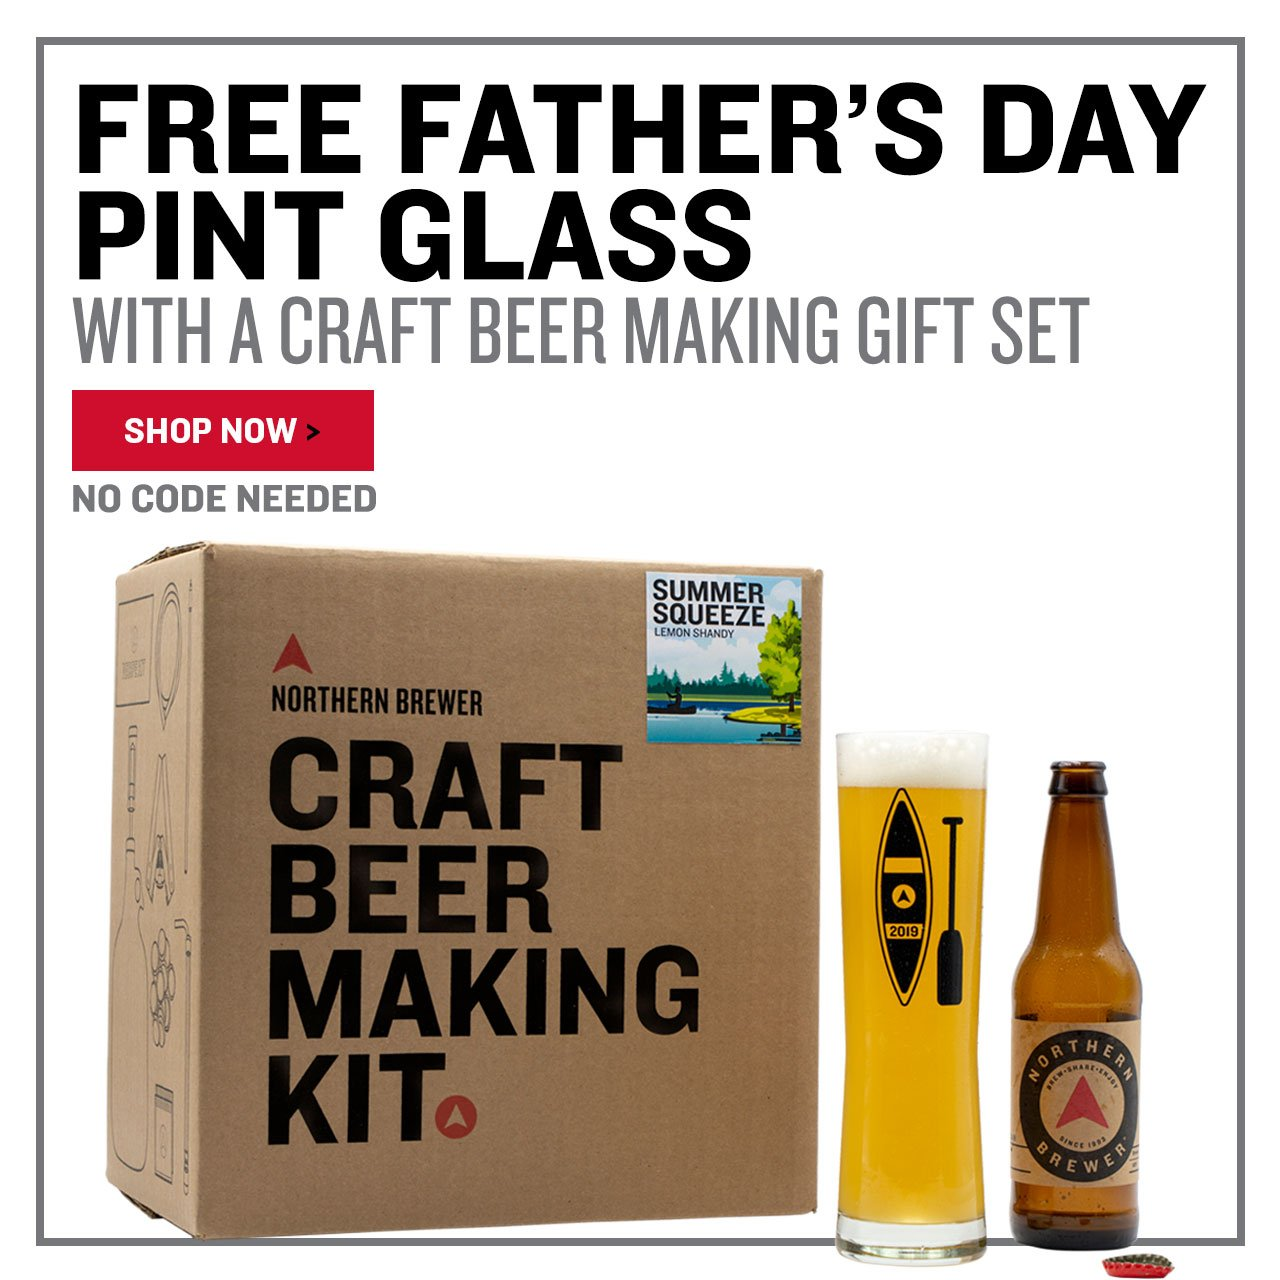 Free Father's Day Glass with a Craft Beer Making Kit. No promo code needed.